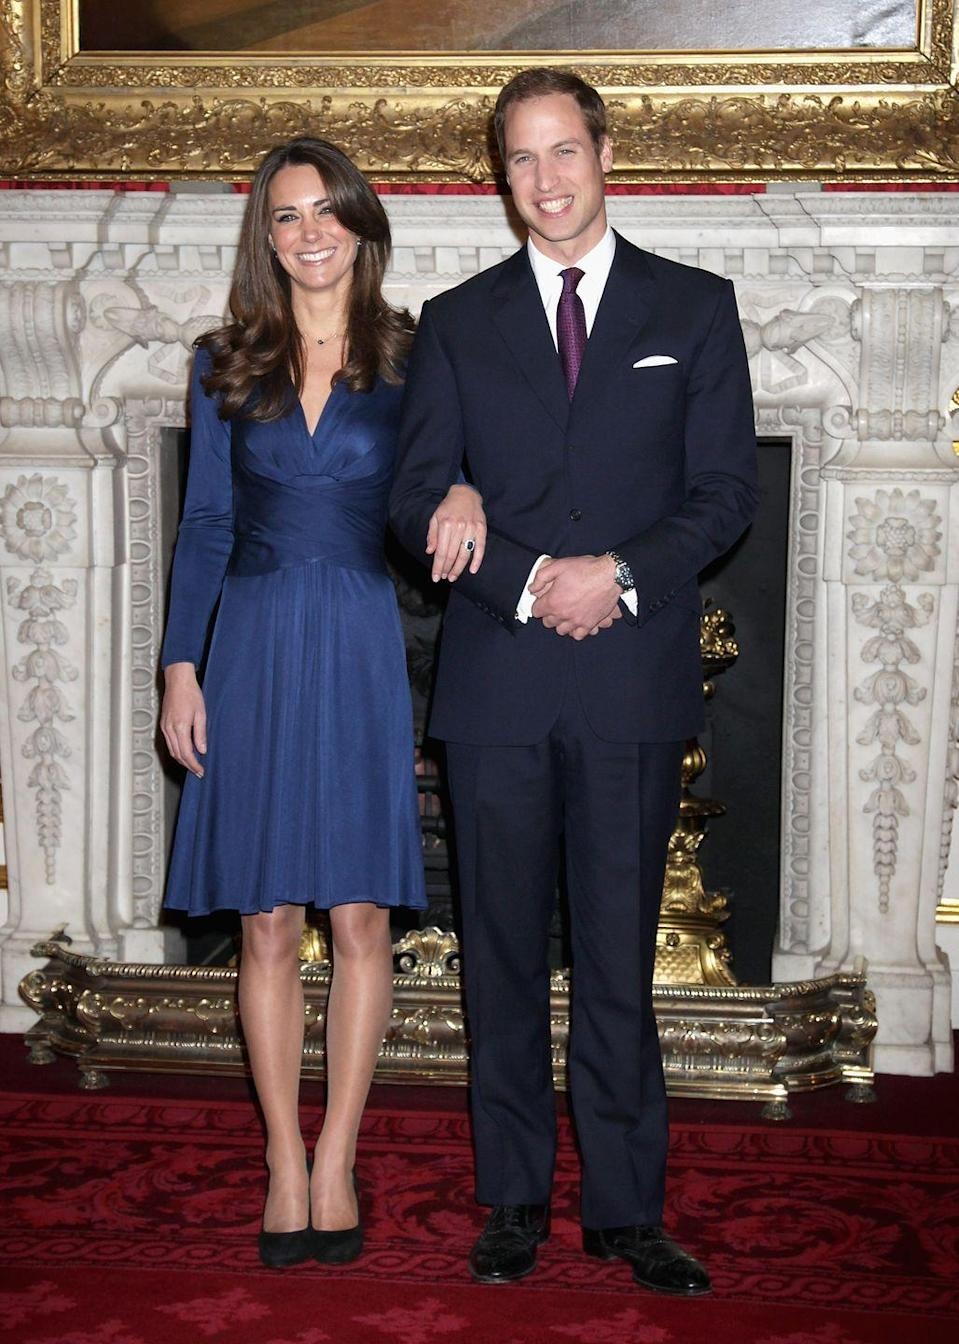 <p>Like, no wonder Kate Middleton fell in love with him. (<em>Psst</em>: This is them at their engagement photo call—cuuuuute.)</p>